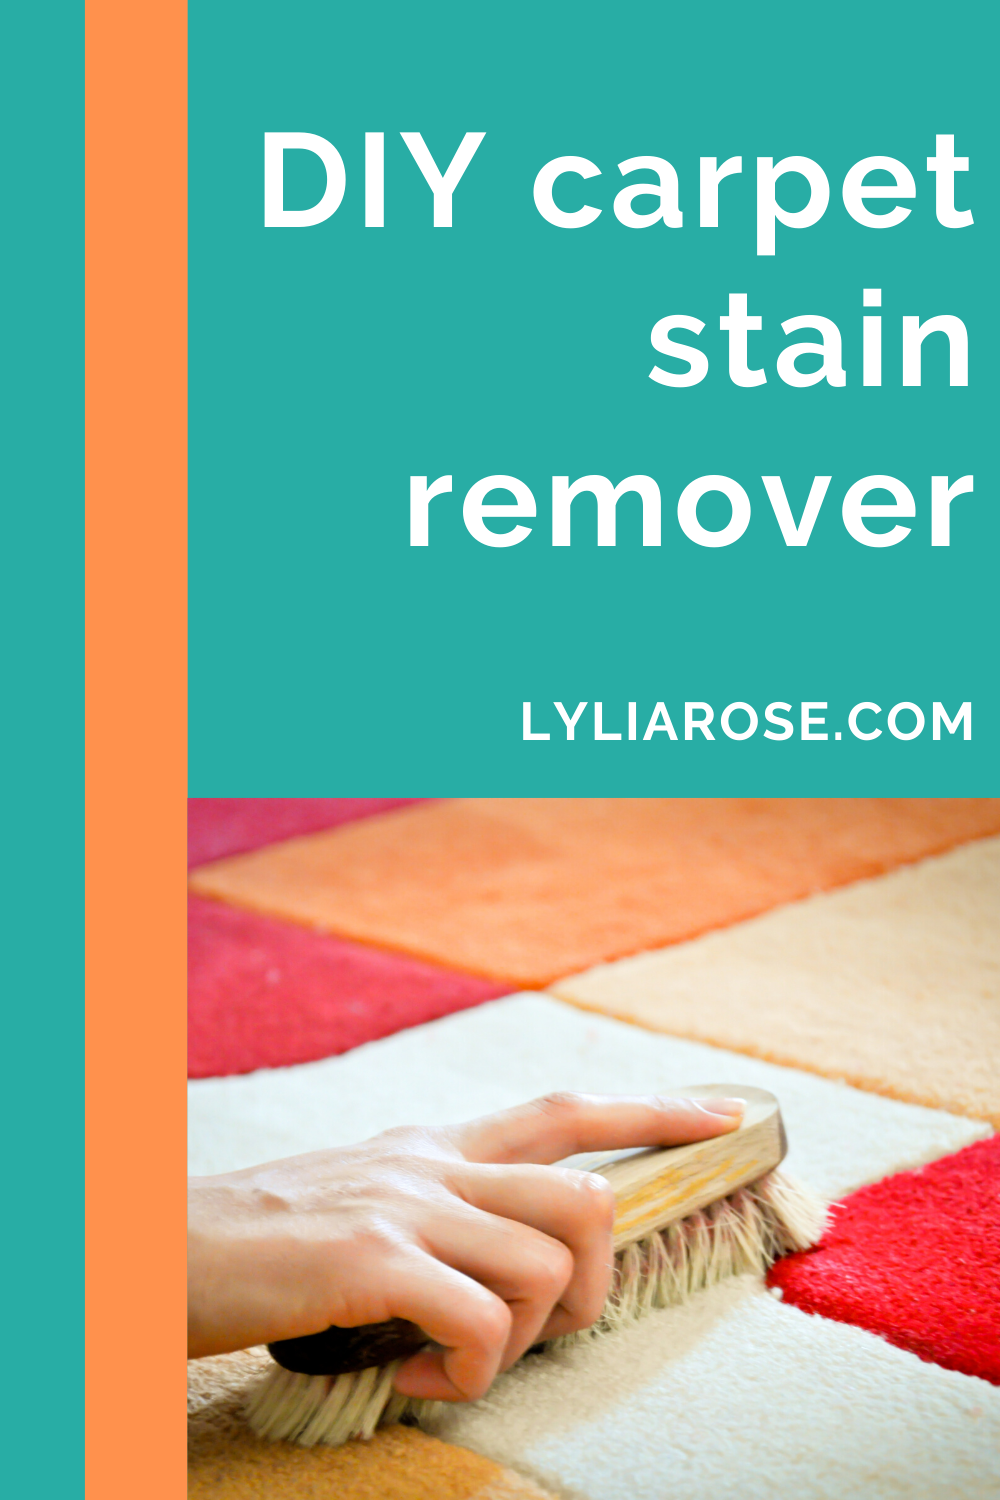 DIY carpet stain remover (5)